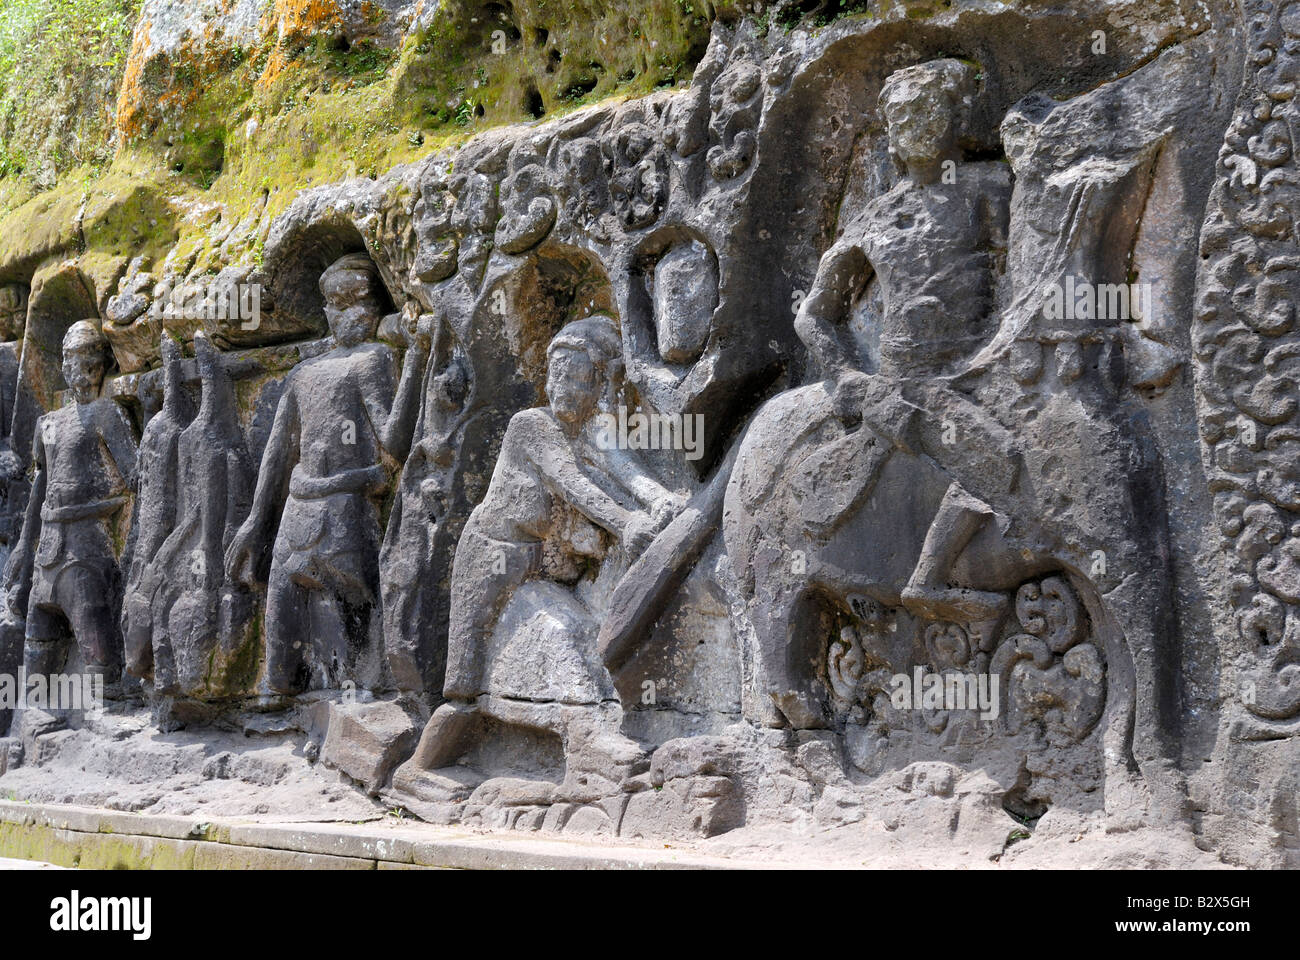 stone carving of Yeh Pulu BALI, INDONESIA, SOUTHEAST ASIA - Stock Image